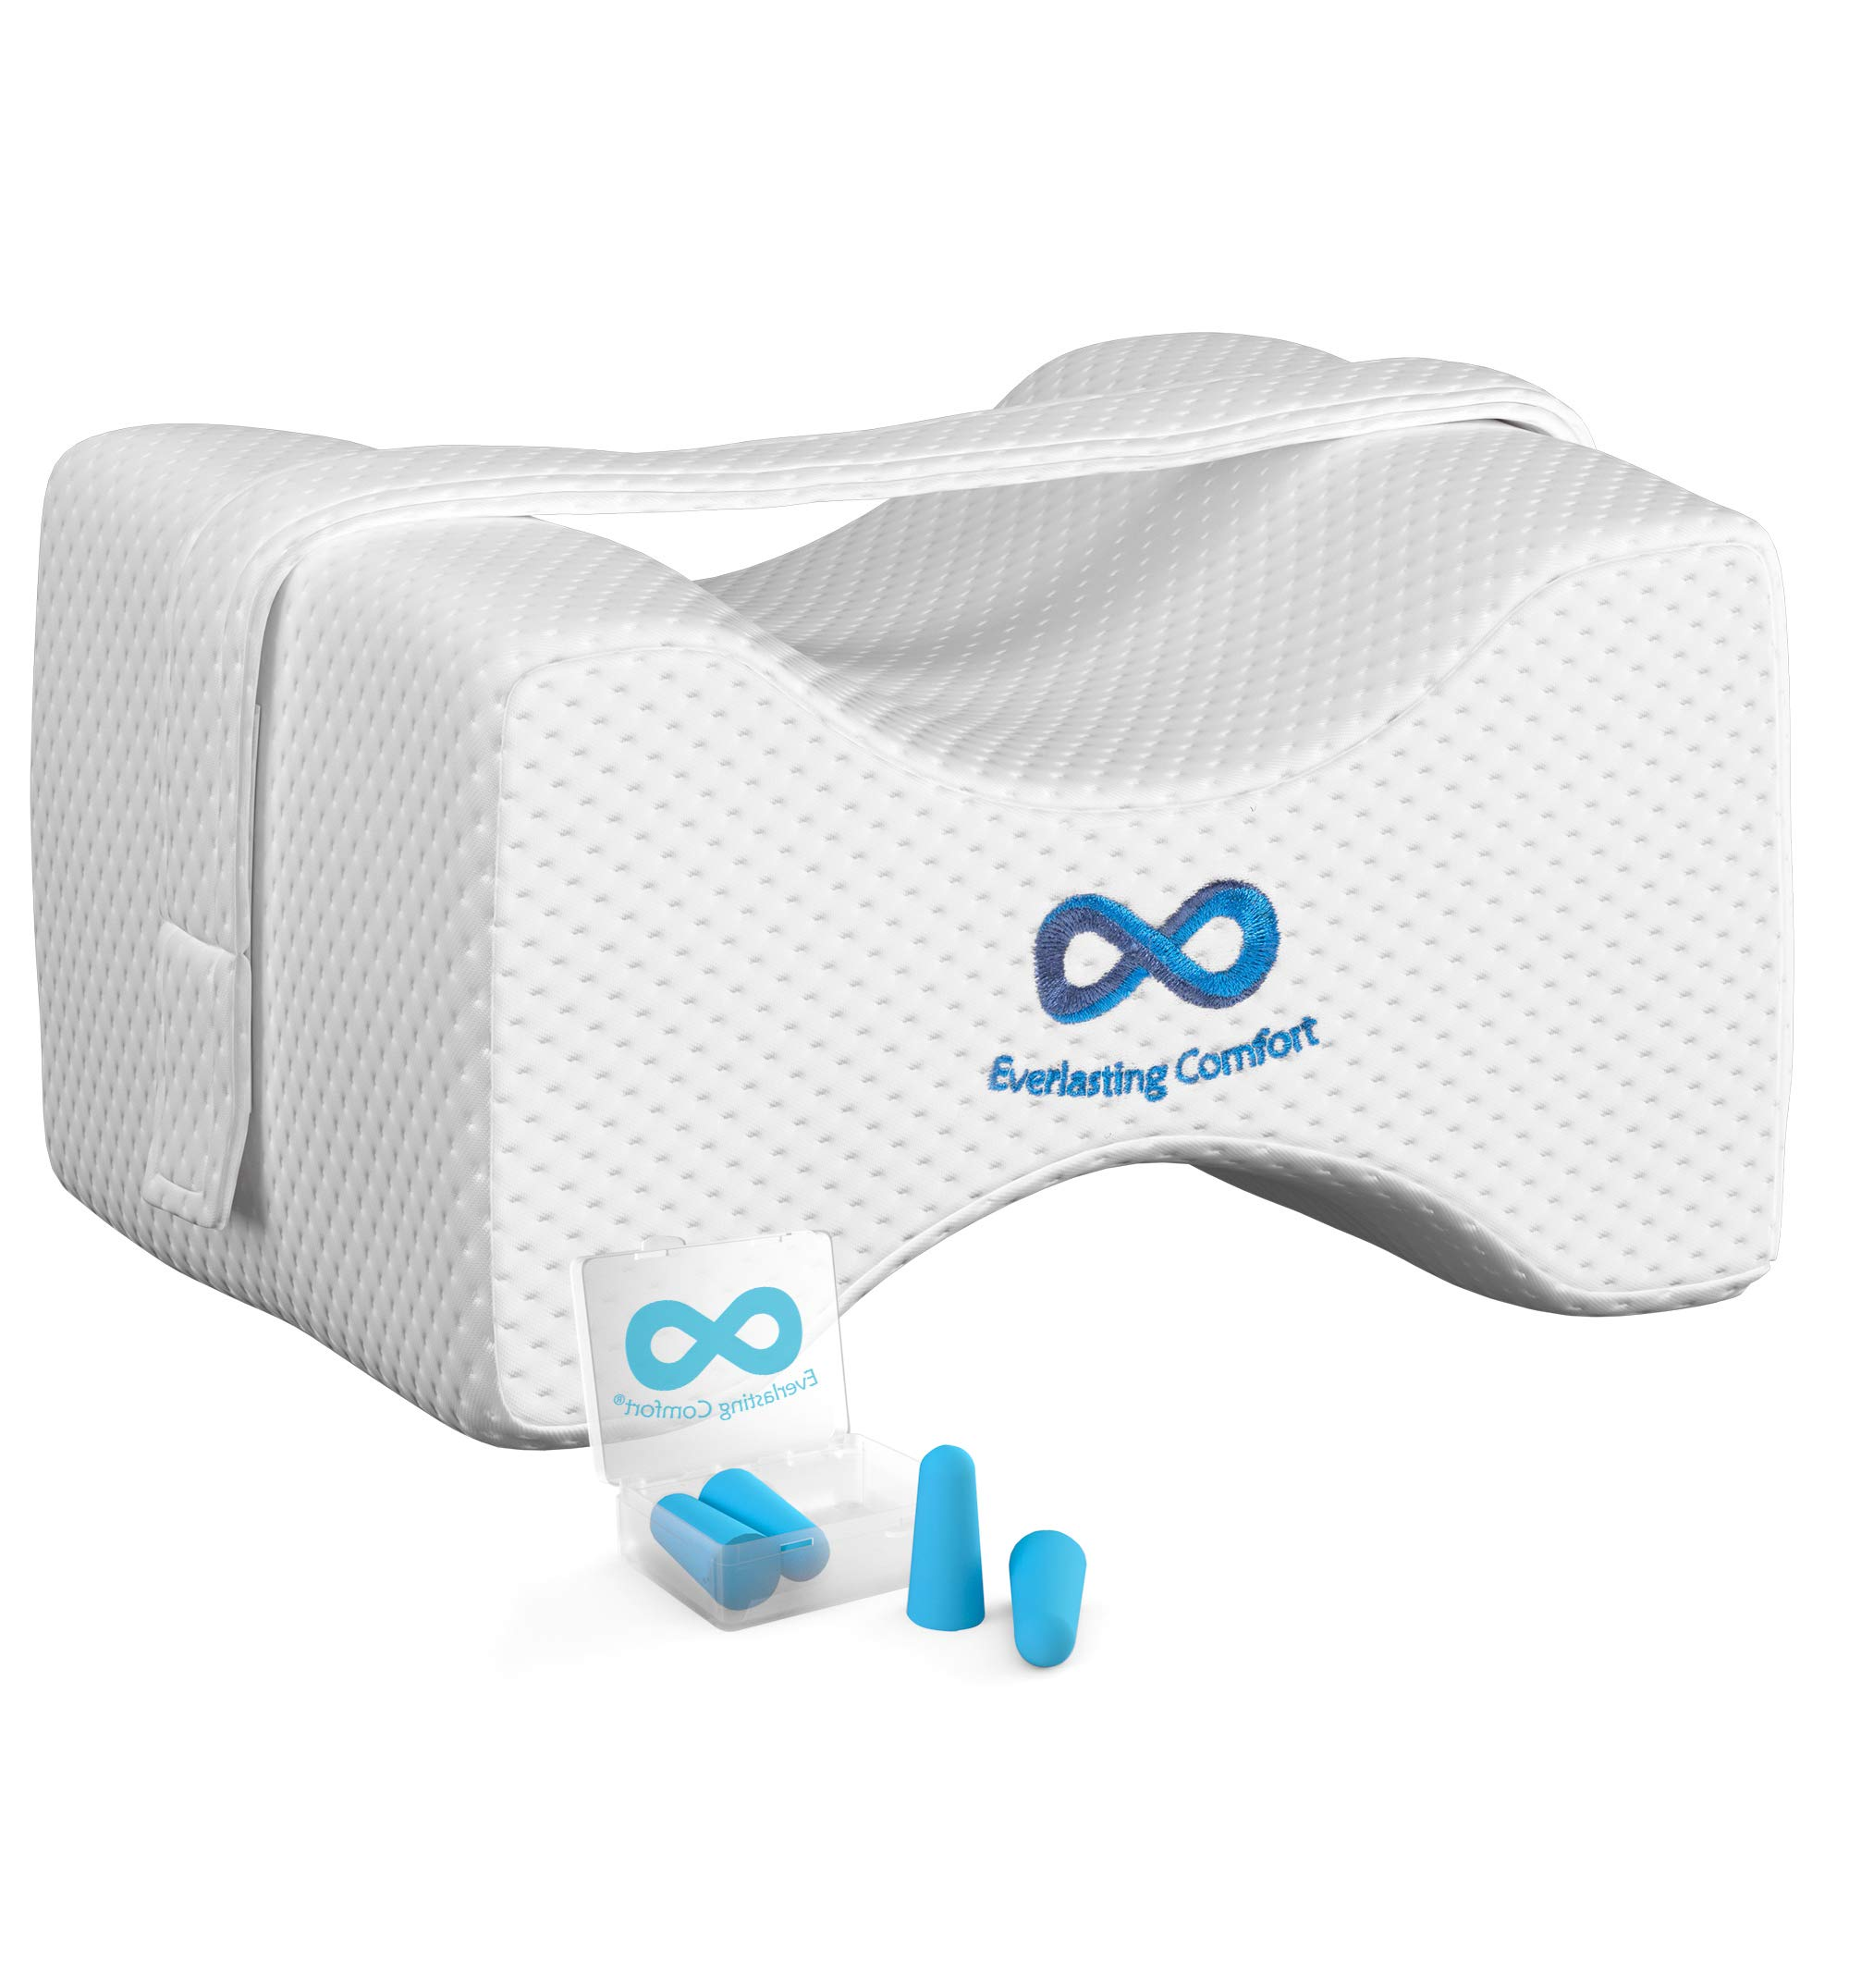 Everlasting Comfort 100% Pure Memory Foam Knee Pillow with Adjustable, Removable Strap and Ear Plugs - Leg Pillow for Sleeping by Everlasting Comfort